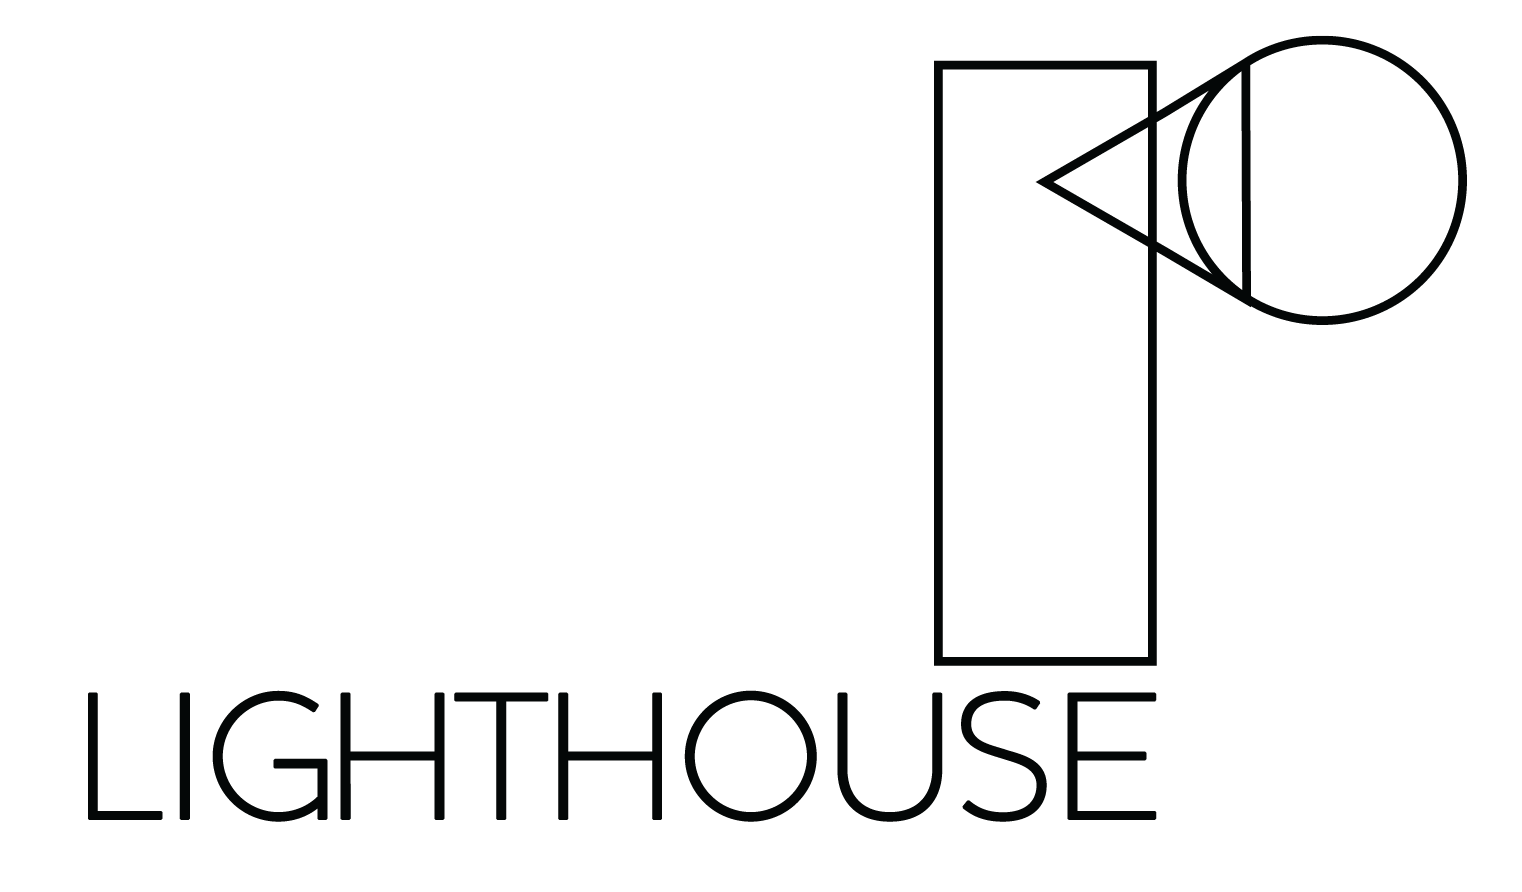 lighthouseArtboard 1.png